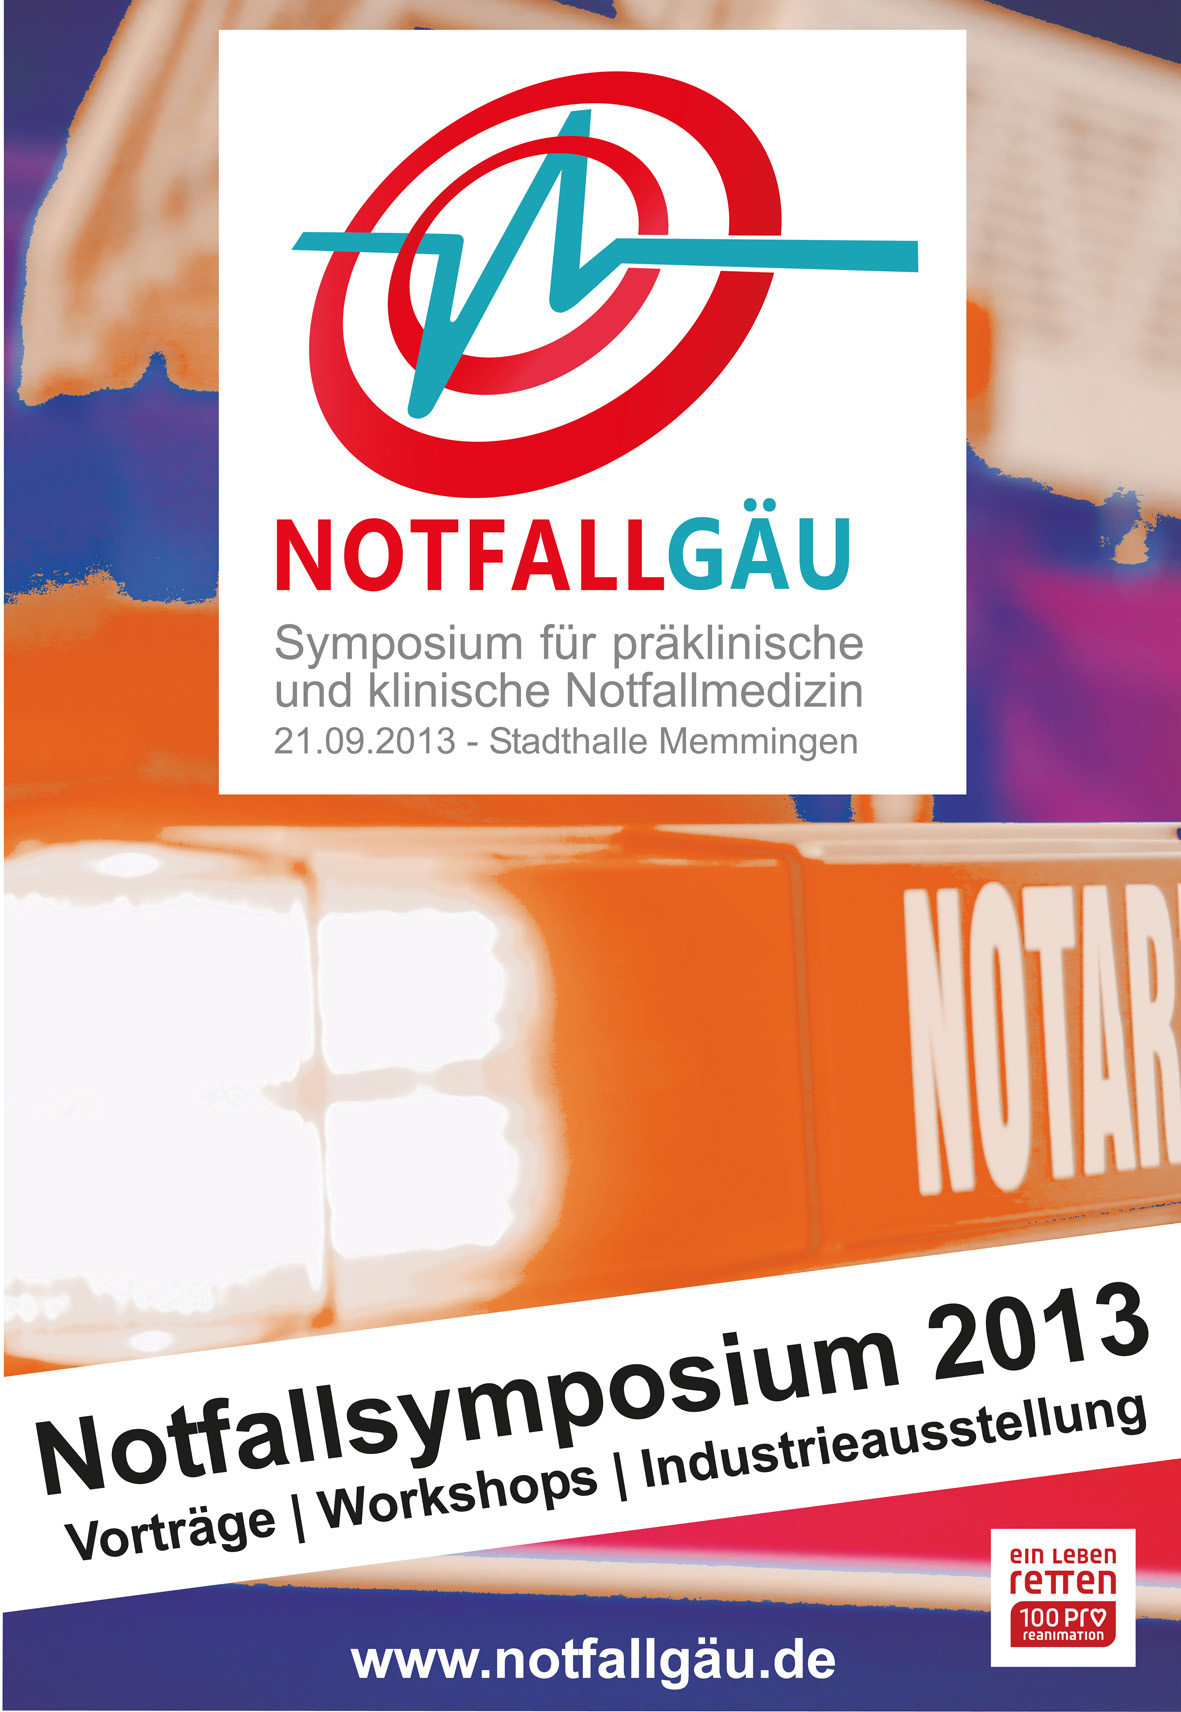 21-09-2013 notfallgau memmingen stadthalle new-facts-eu